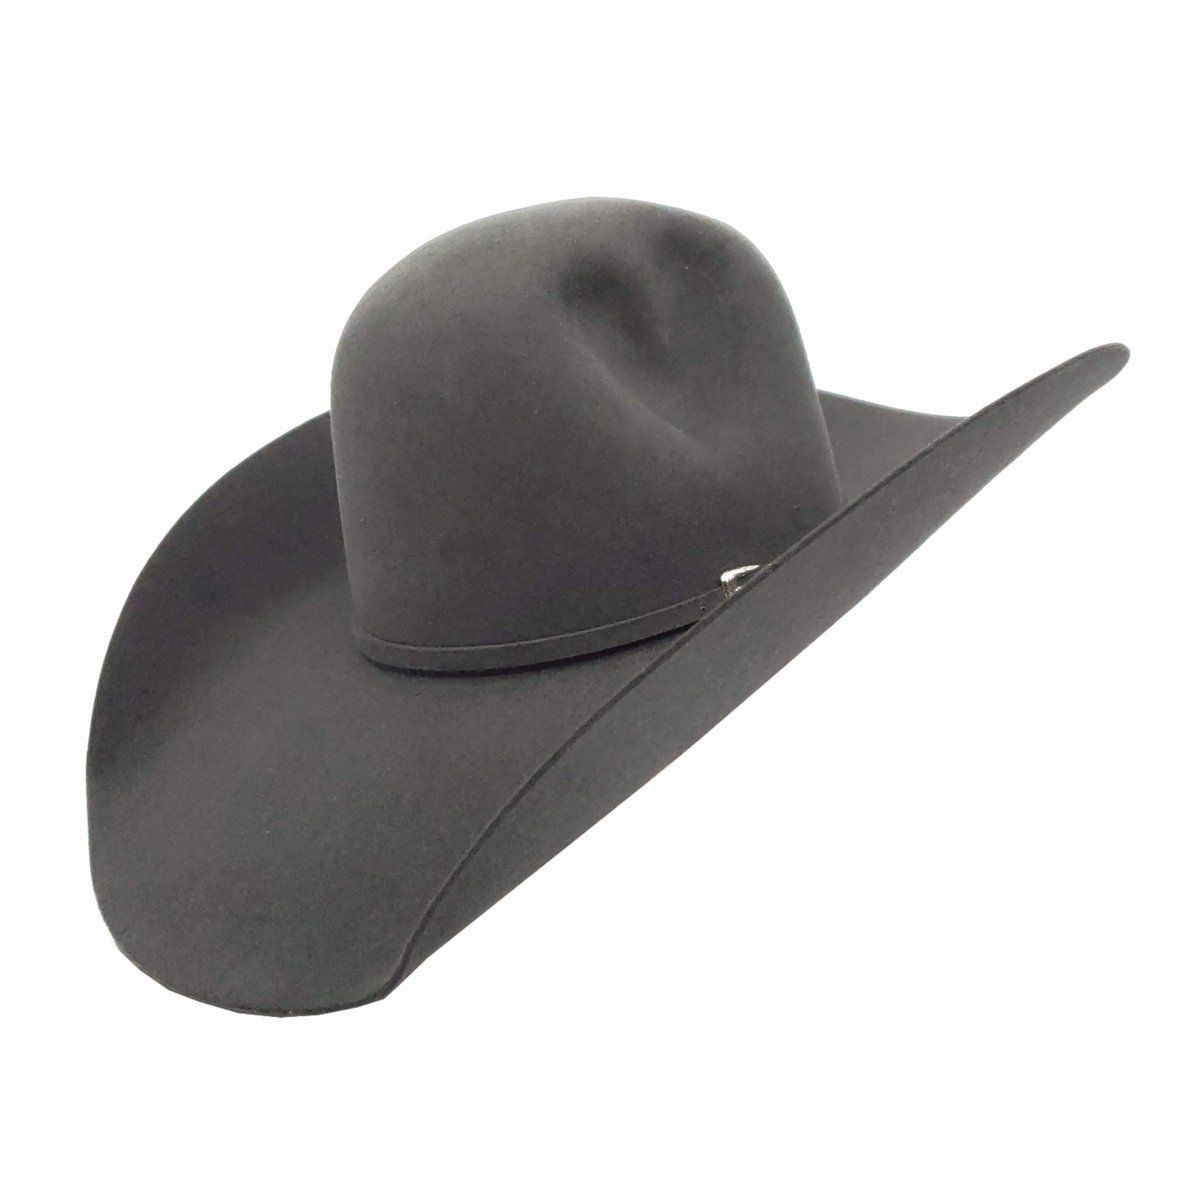 c7c2114123be2 Rodeo King Charcoal Felt Cowboy Hat Available In 4 1 4